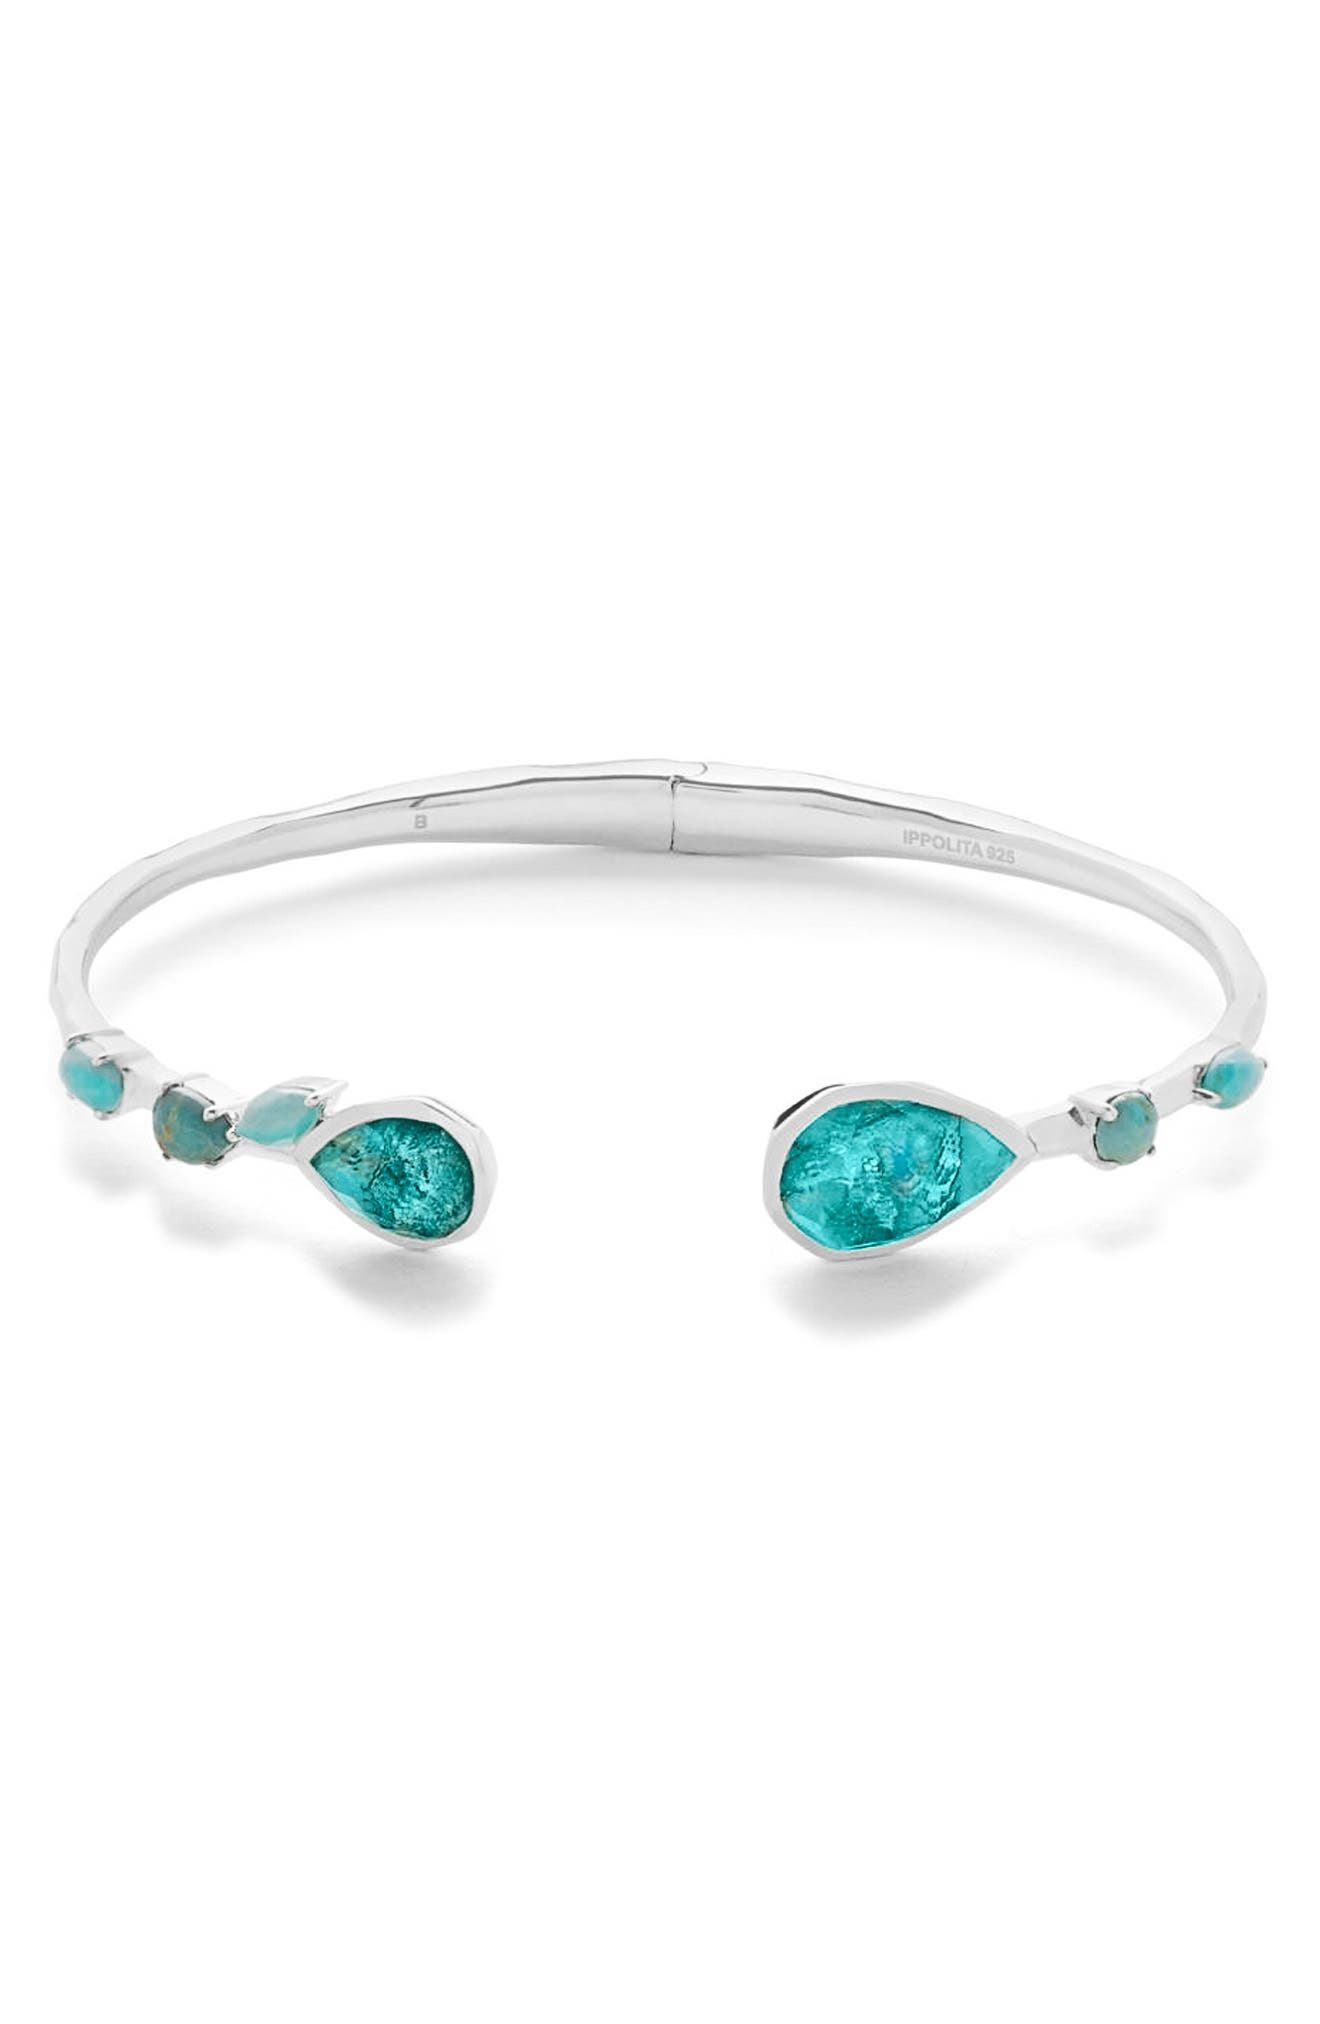 Rock Candy Skinny Cuff,                             Main thumbnail 1, color,                             Turquoise